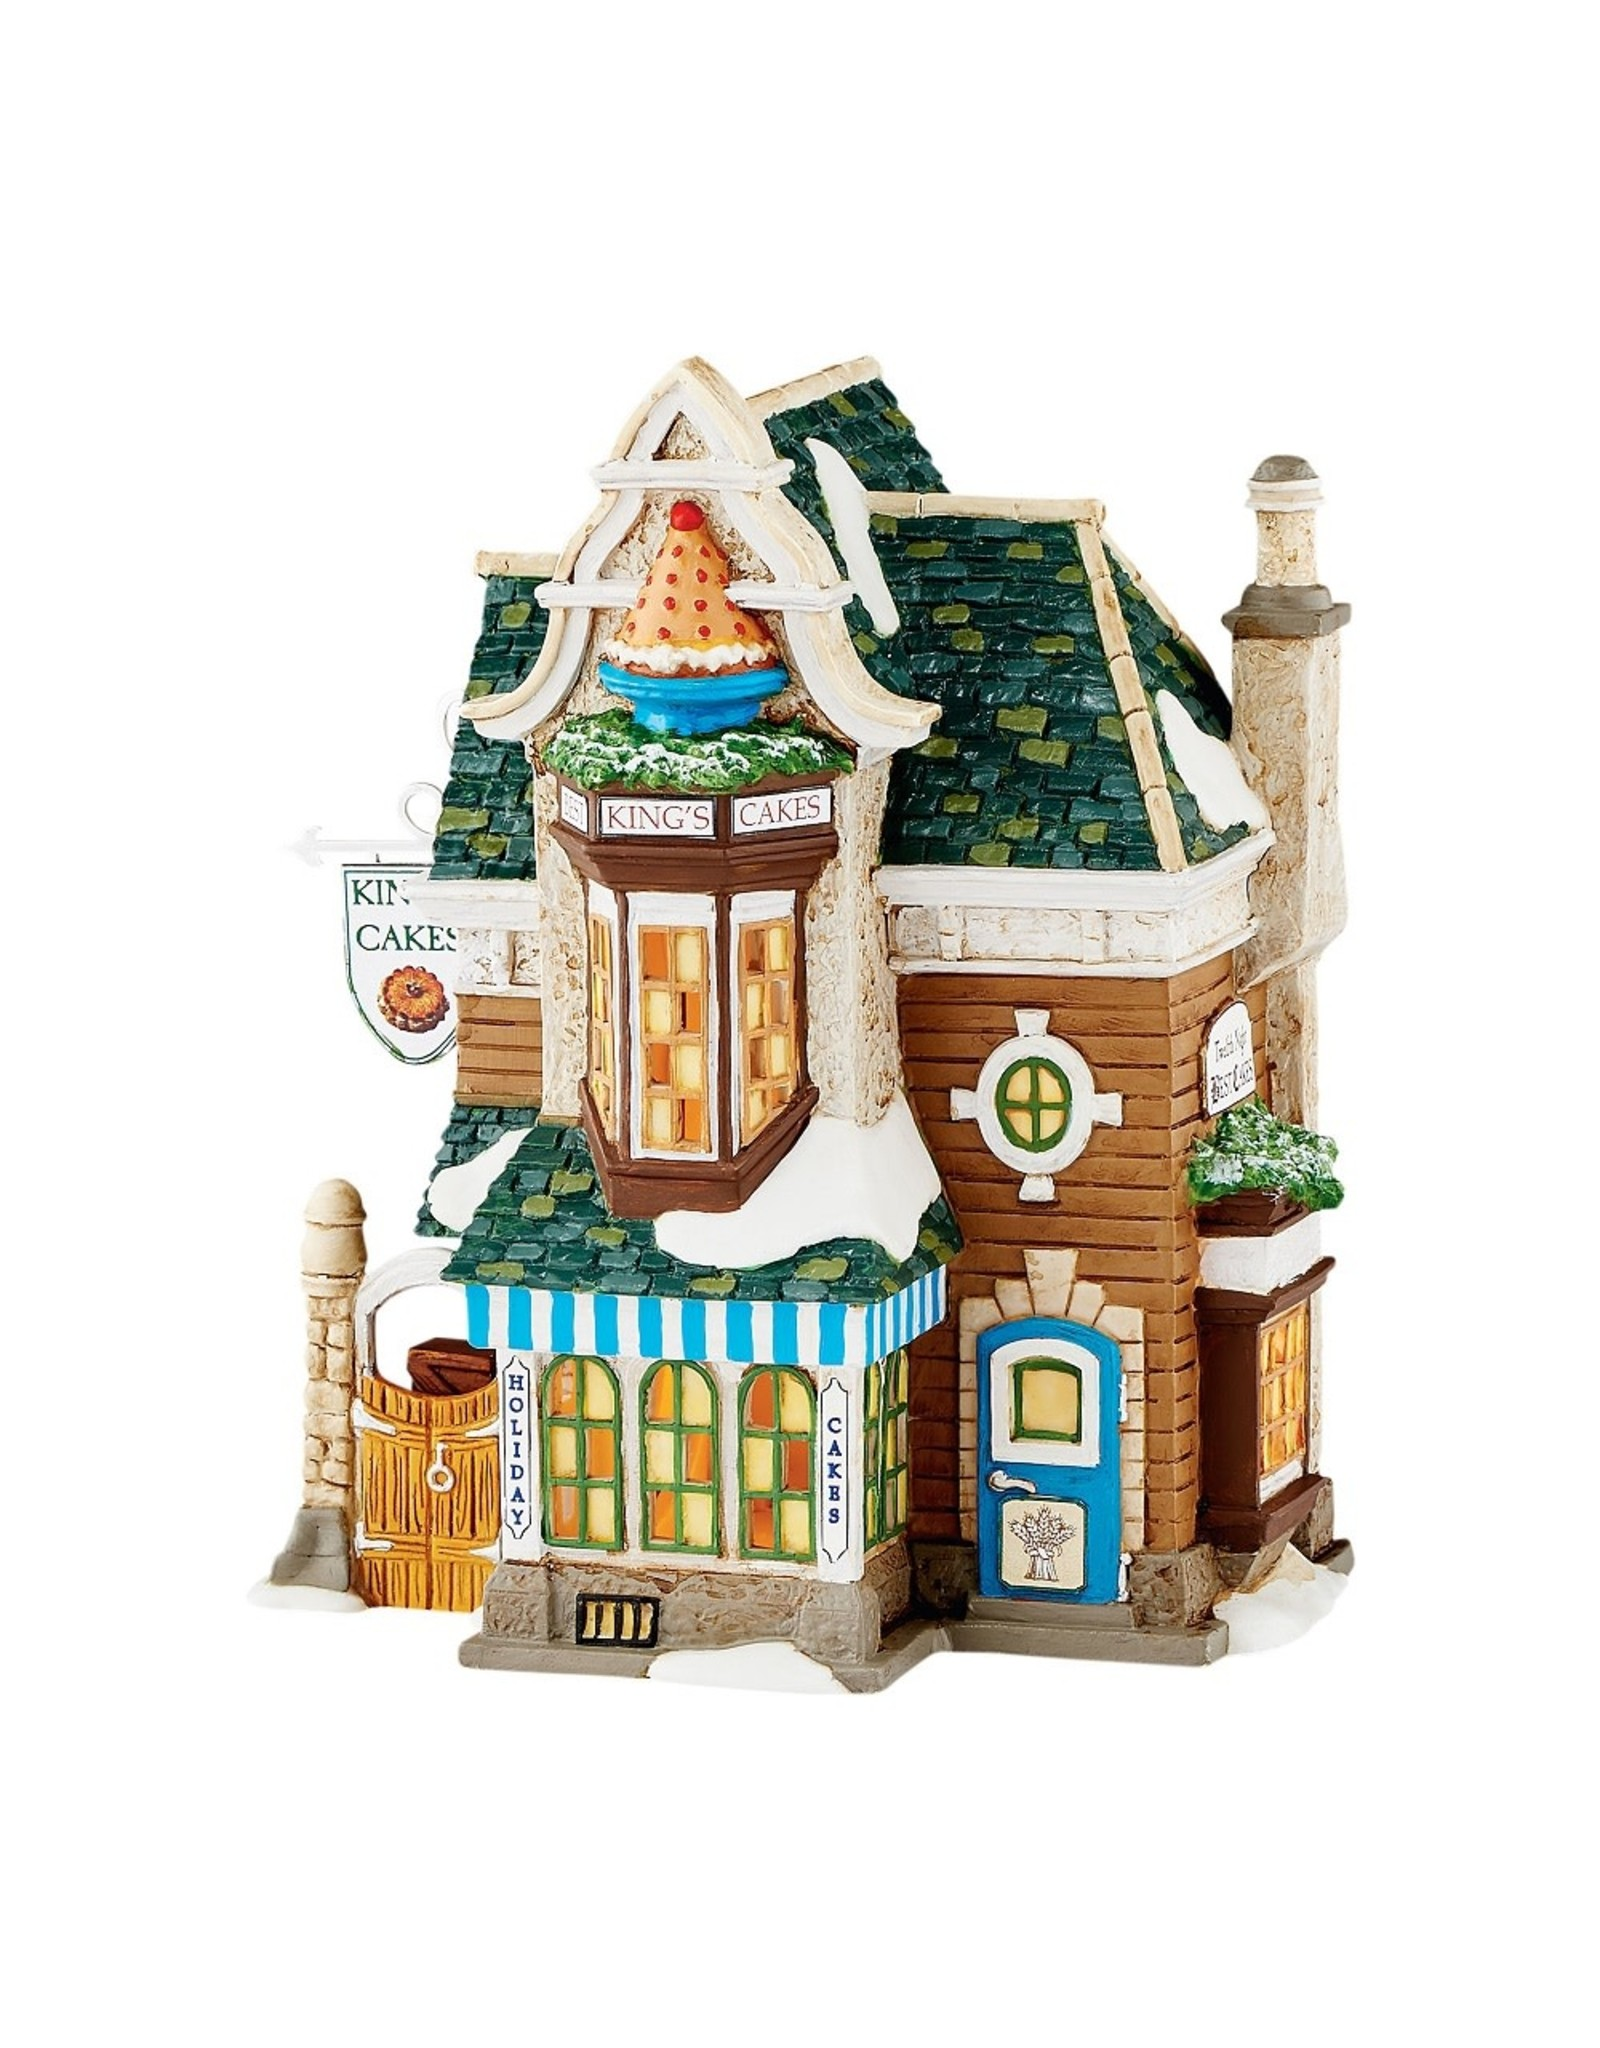 Department 56 King's Cakes